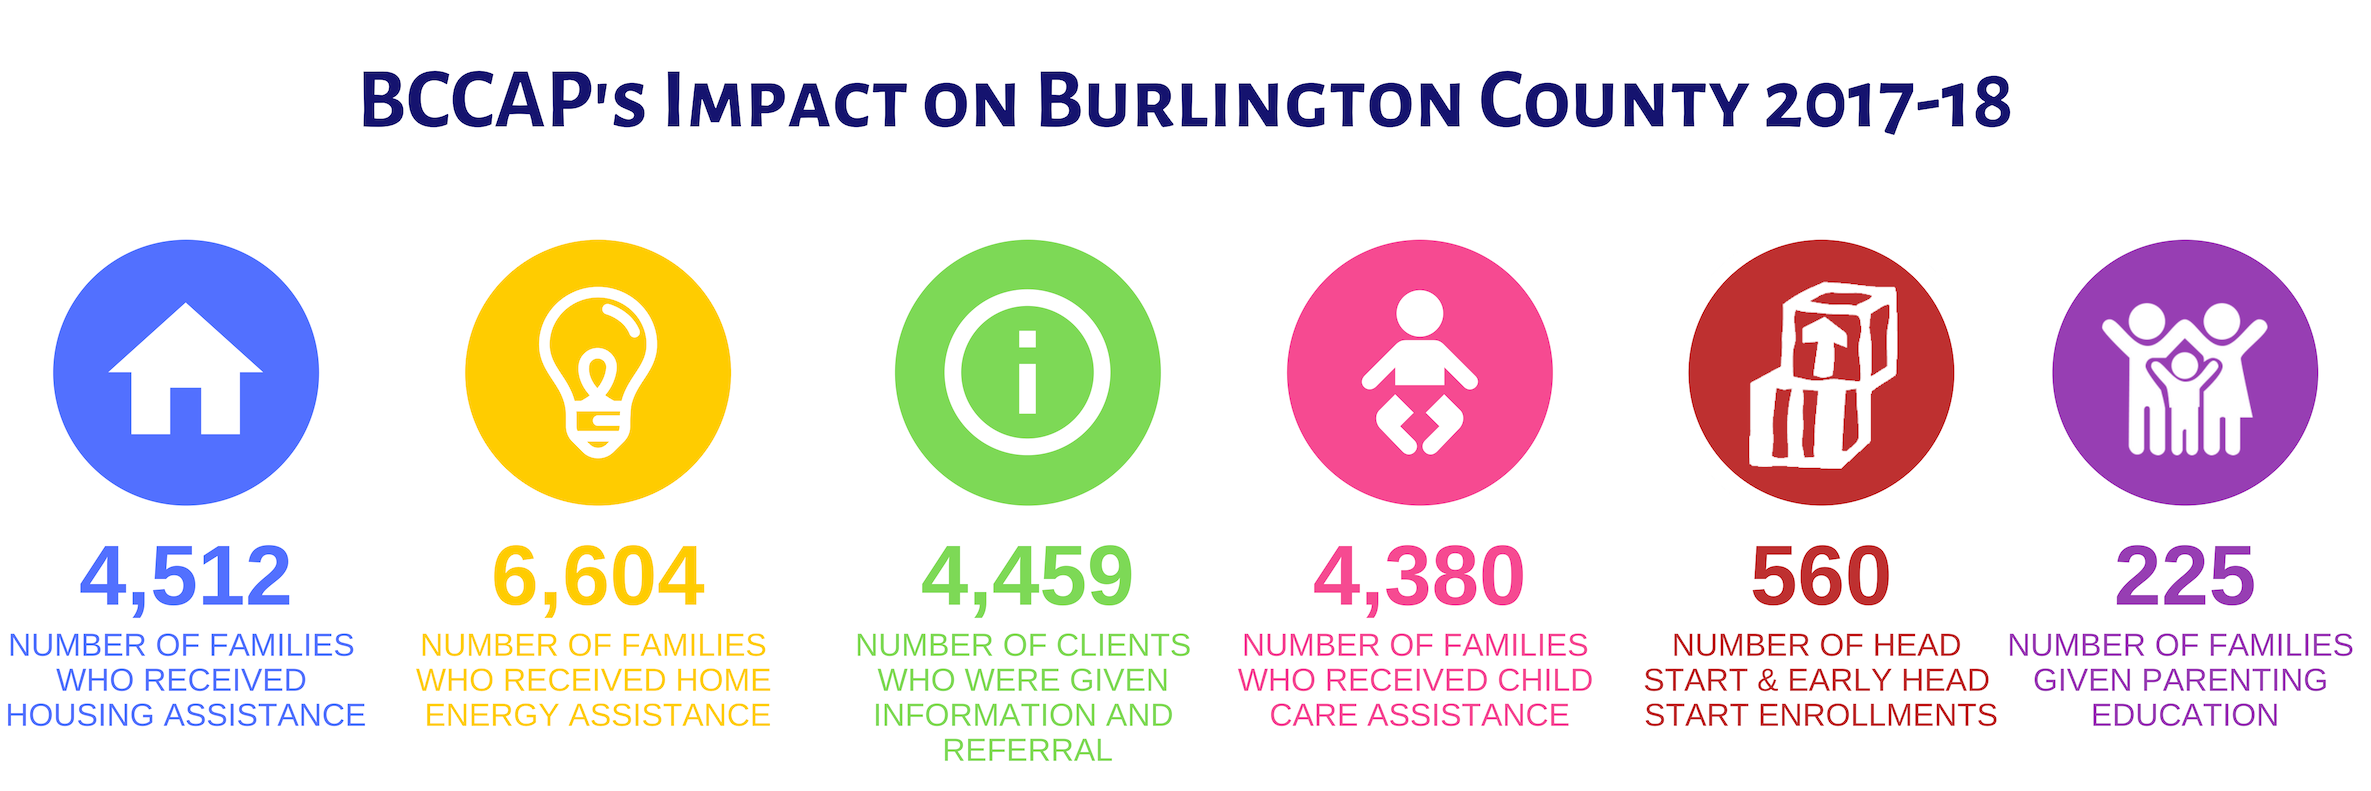 BCCAP - Burlington County Community Action Program | Helping